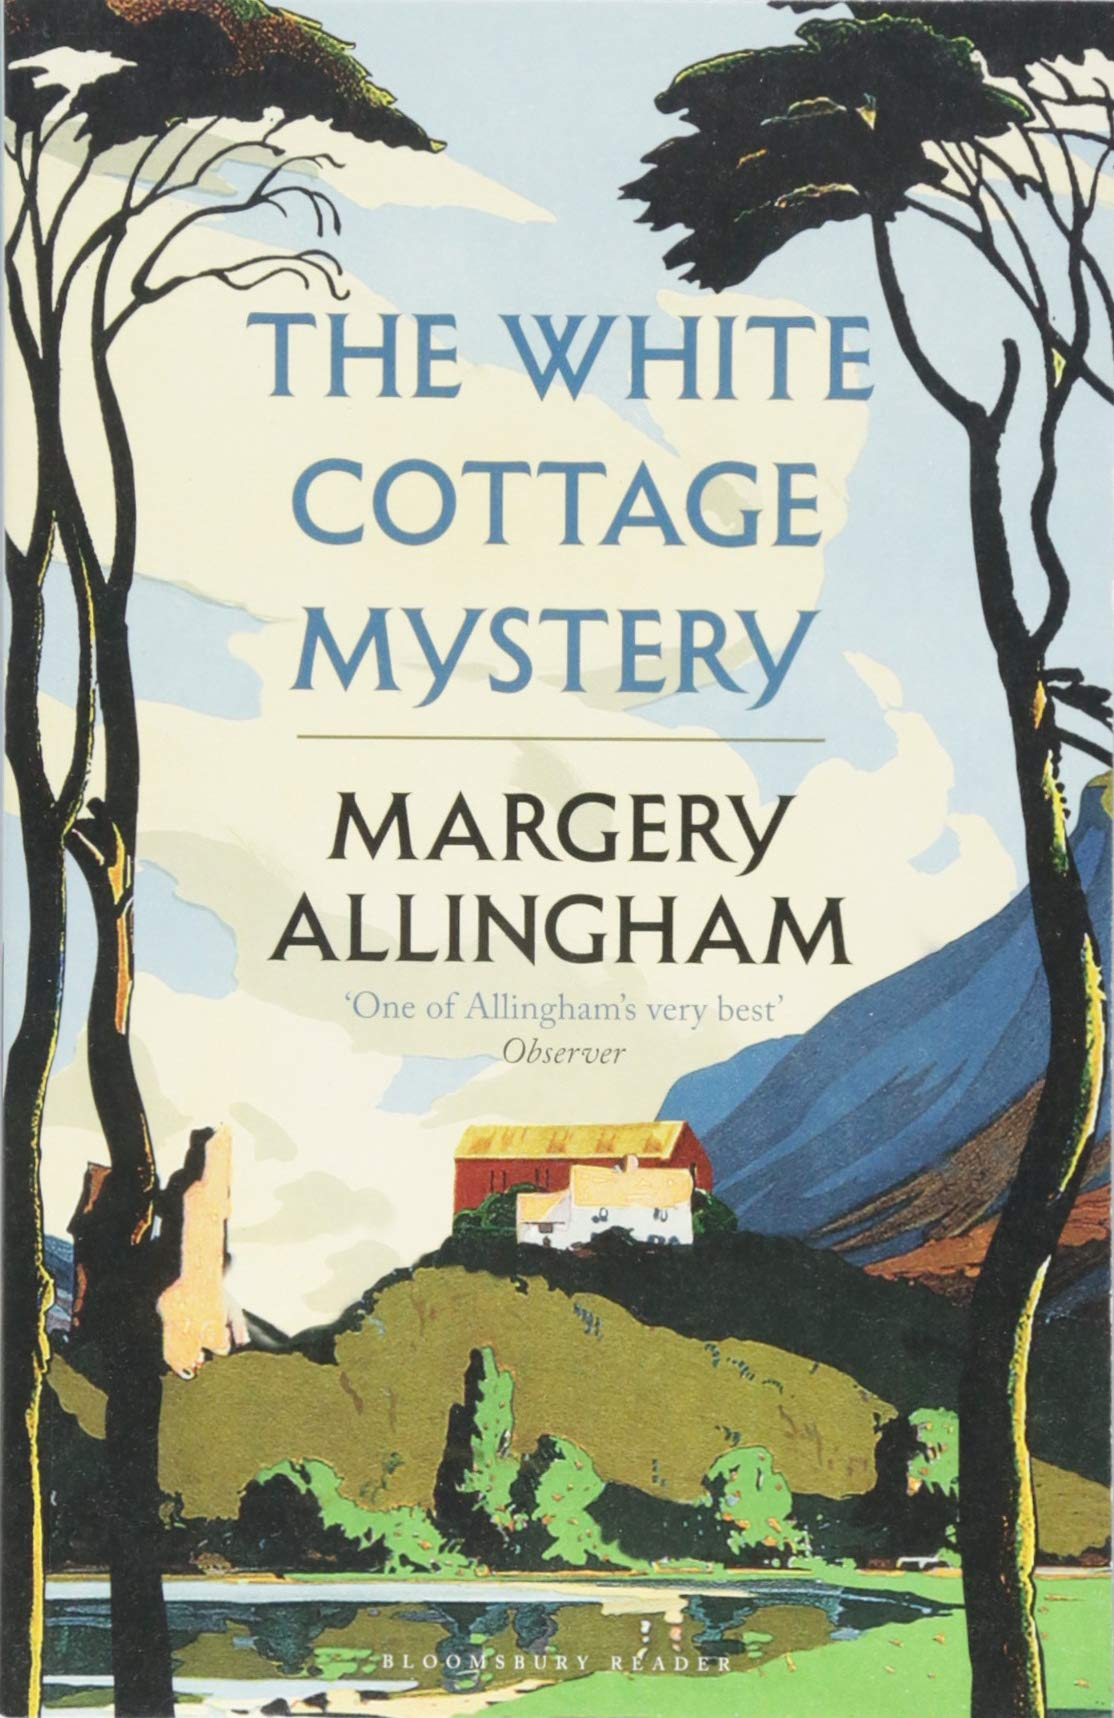 The White Cottage Mystery: Amazon.es: Margery Allingham: Libros en idiomas extranjeros